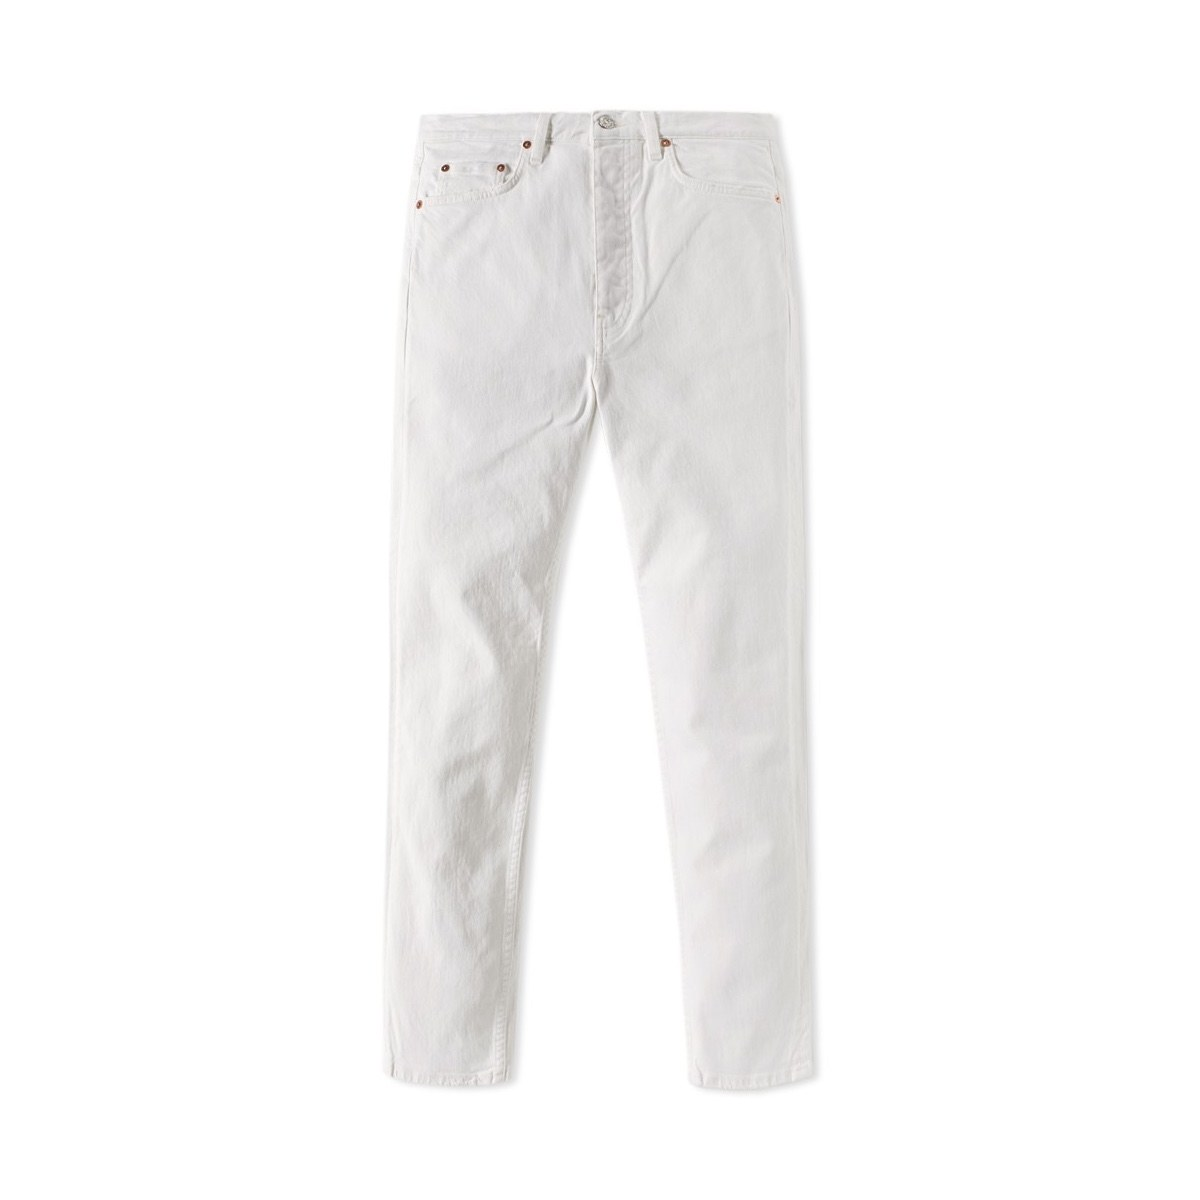 white jeans slouchy and tapered ANAZVIN